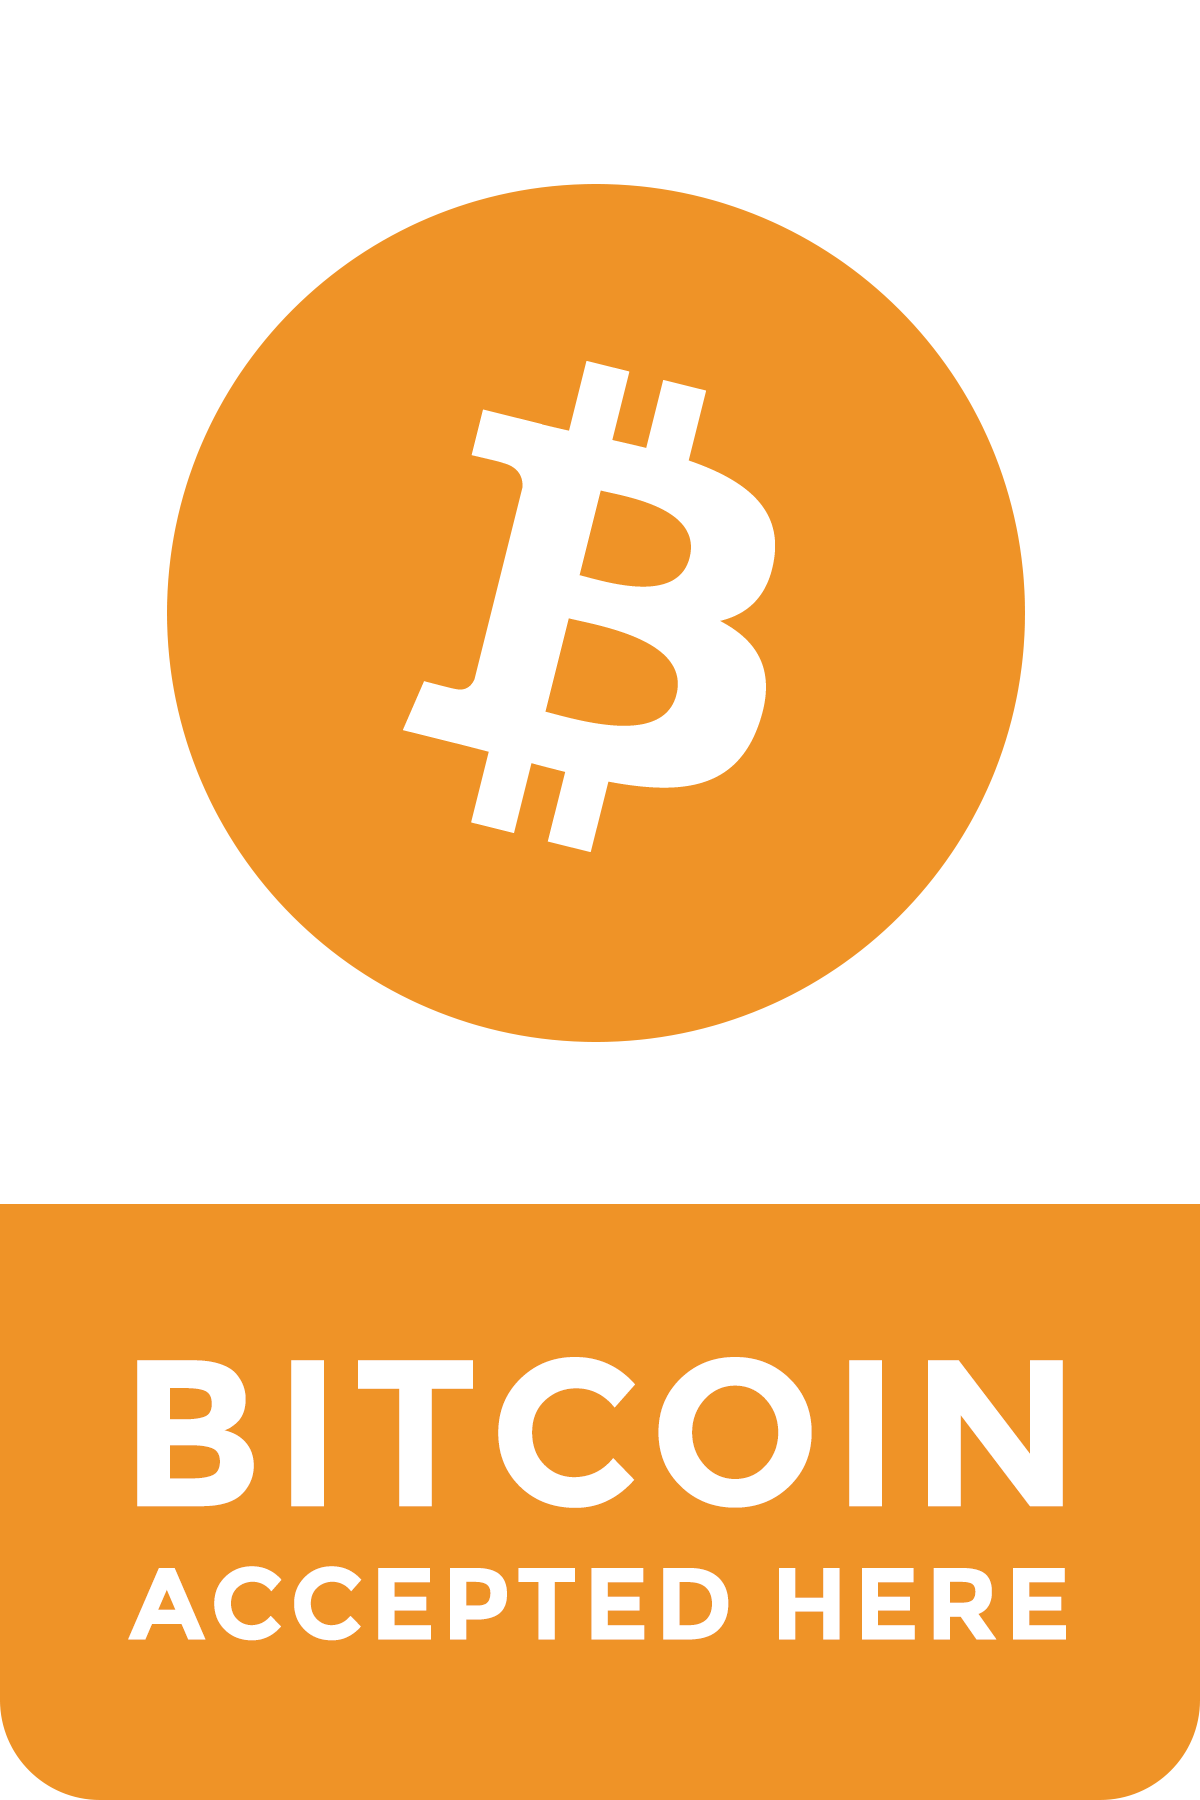 Bitcoin_accepted_here_sign2.png